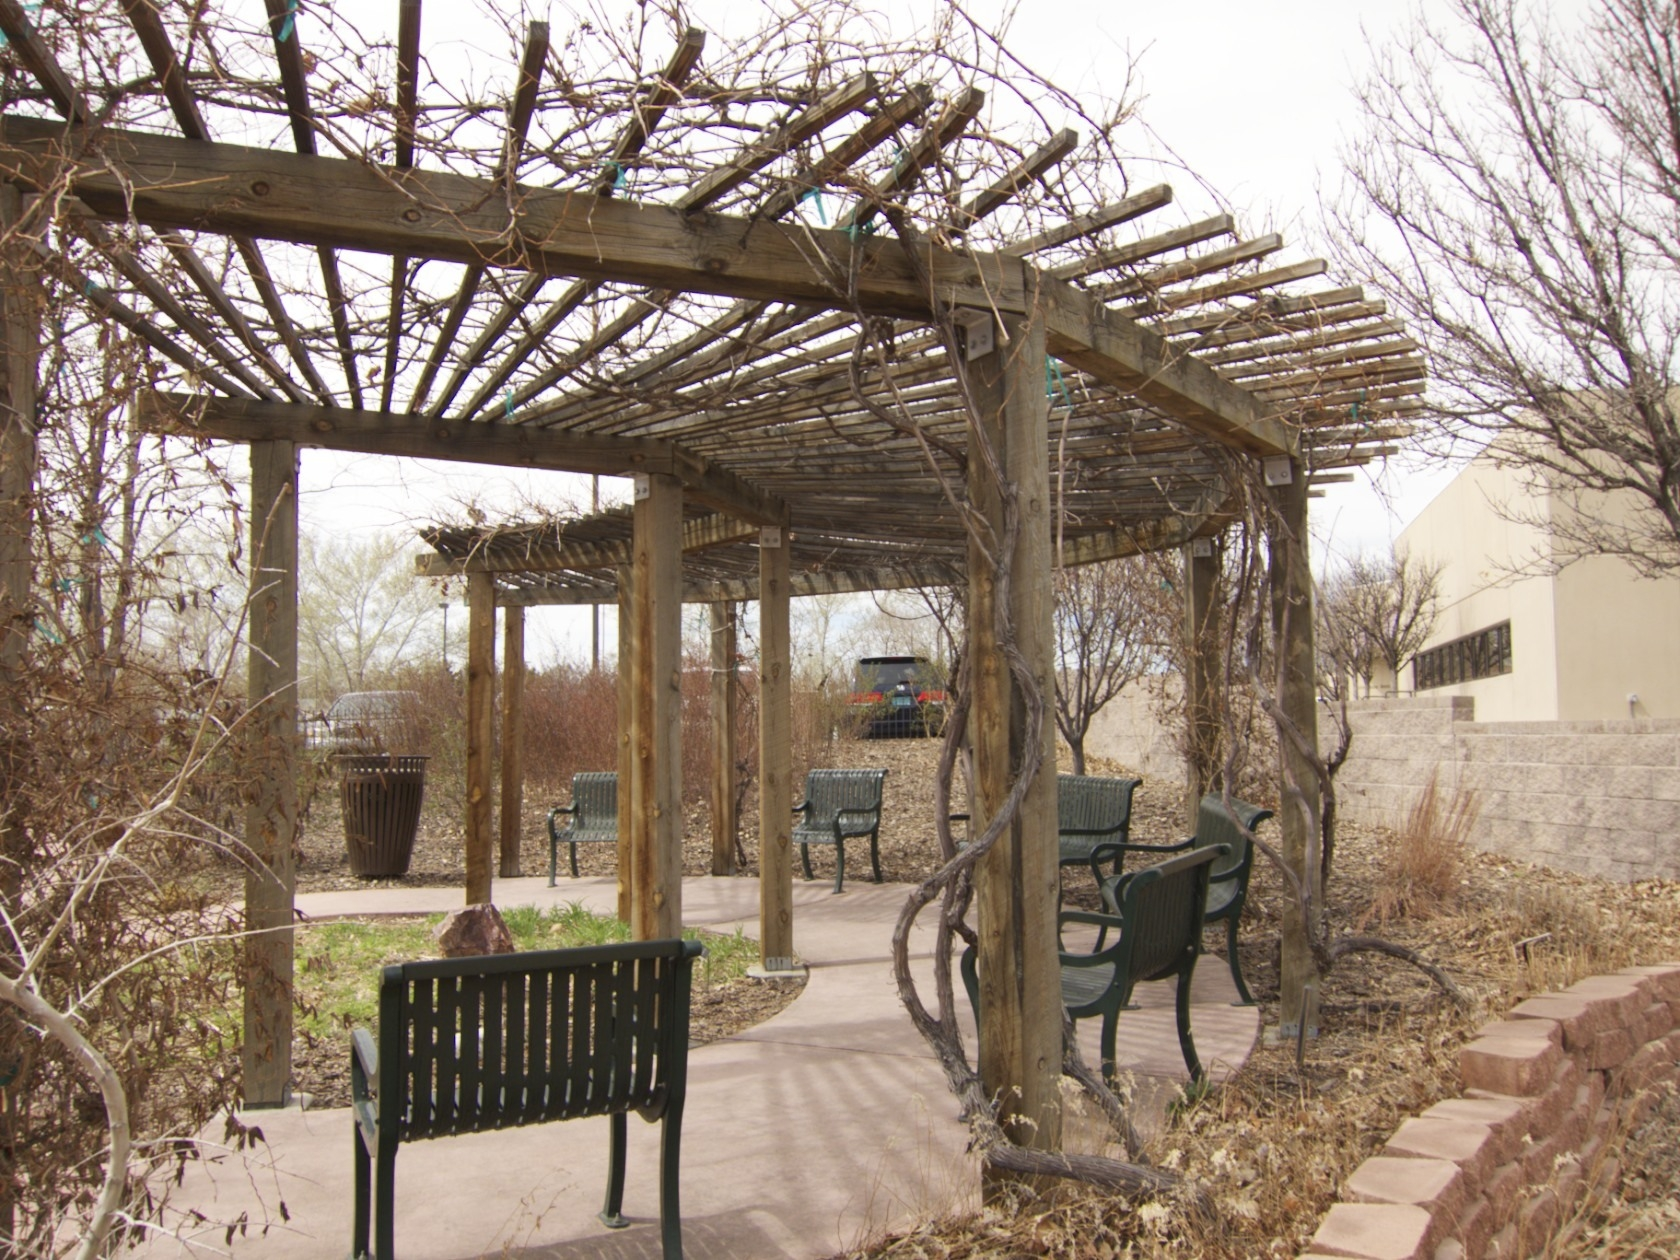 grape arbor plans ideas of how to build a trellis for grapes CTEDEAQ